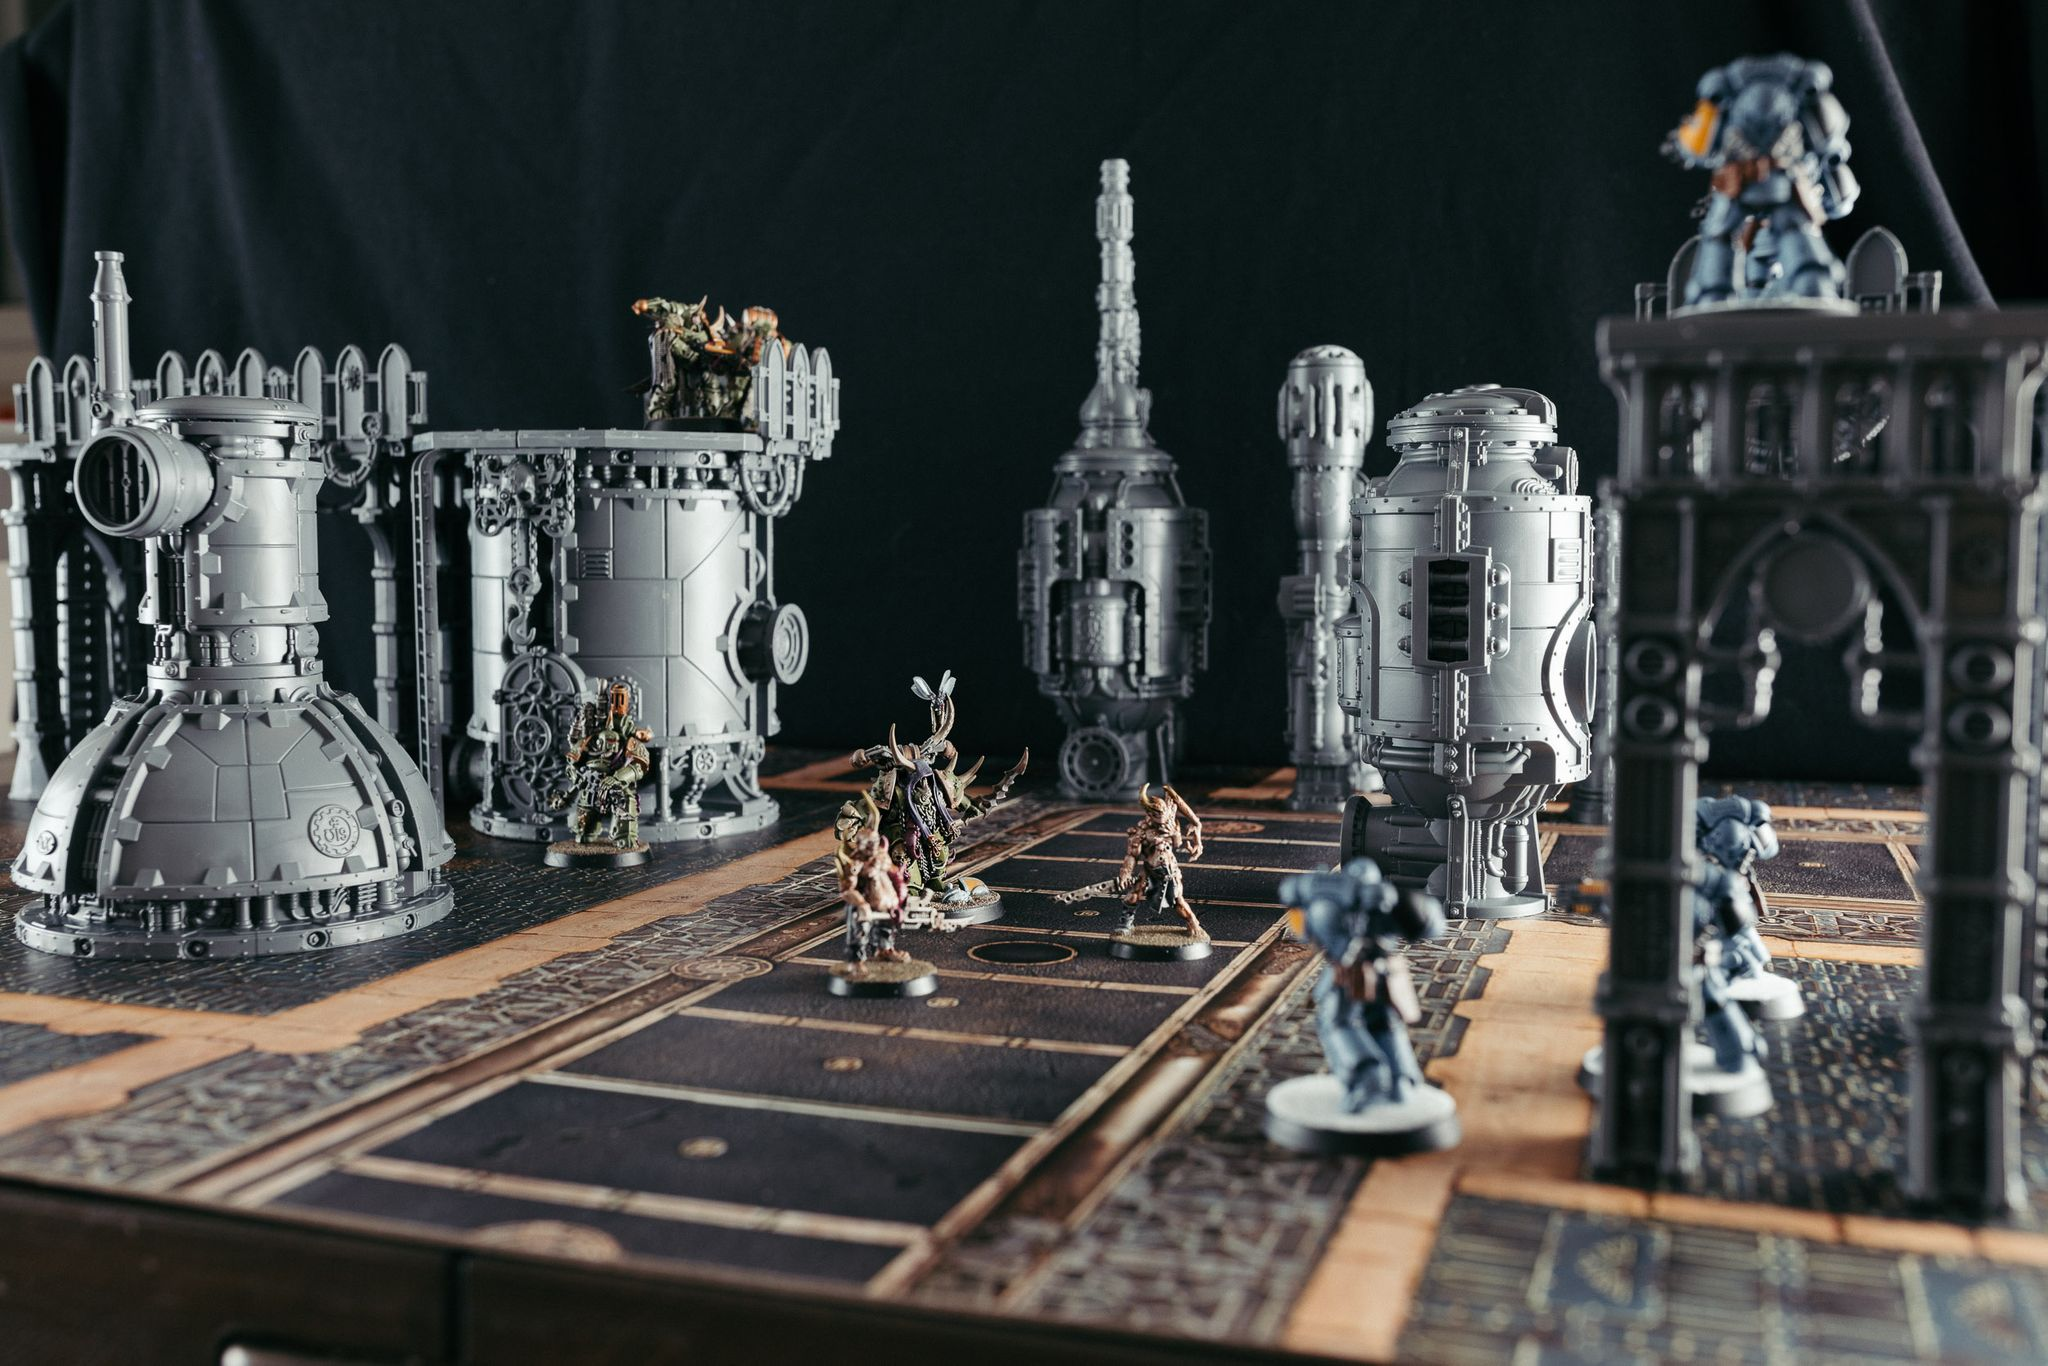 A photo of some Death Guard and Space Wolves miniatures on the new Kill Team starter box terrain. The terrain itself is unpainted grey plastic but is towering over the miniatures and has a very steampunk aesthetic to it.